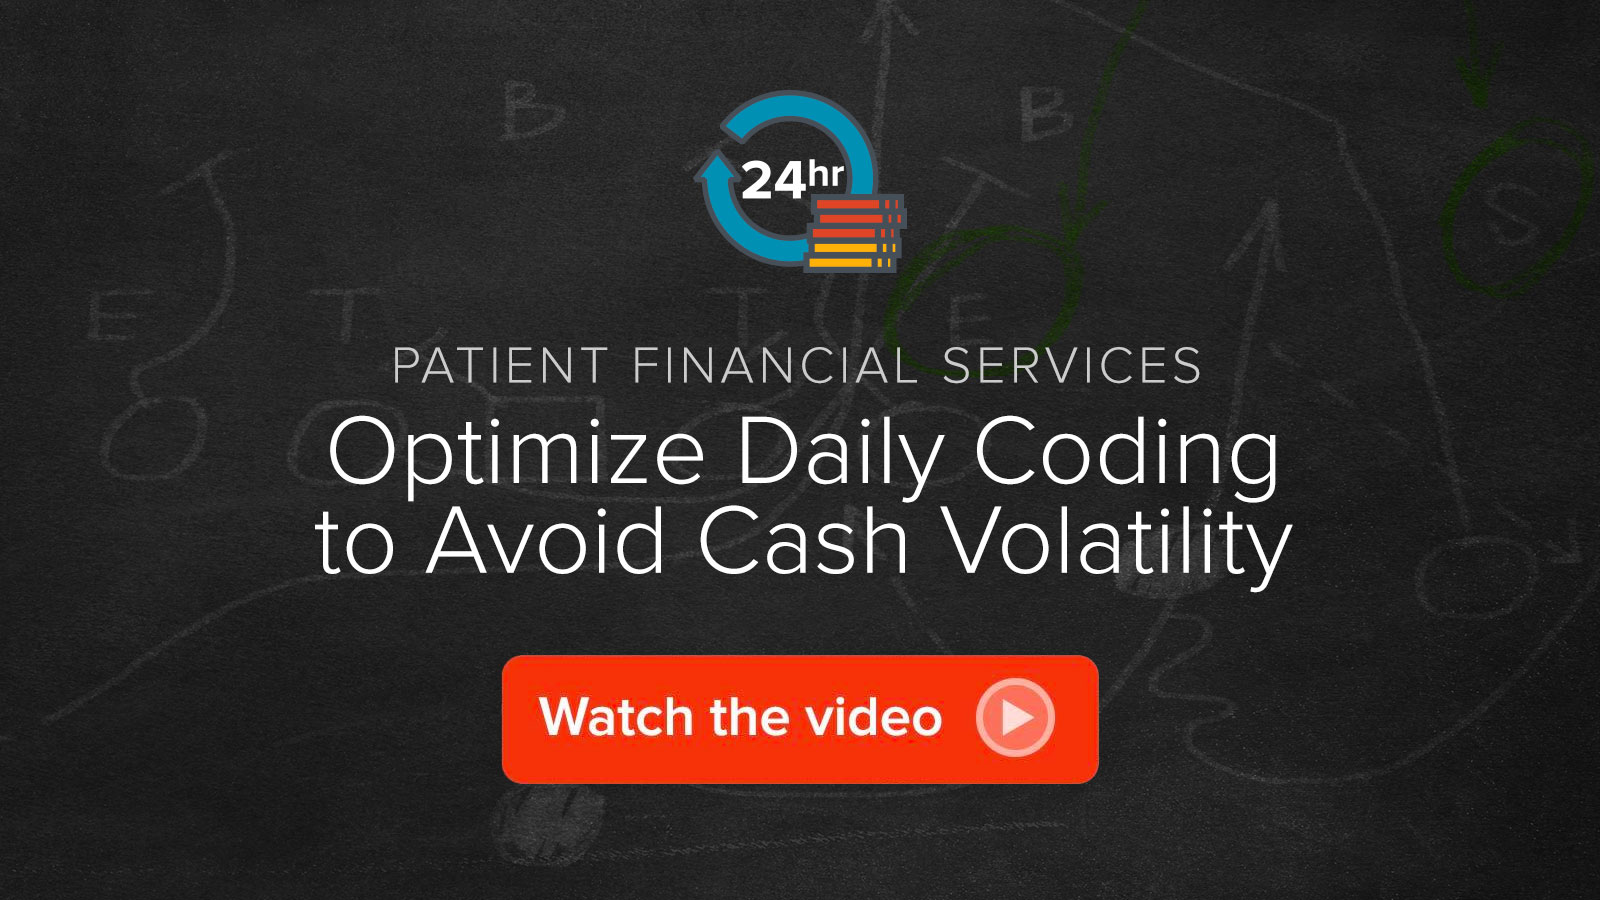 Watch the Optimize Daily Coding to Avoid Cash Volatility video